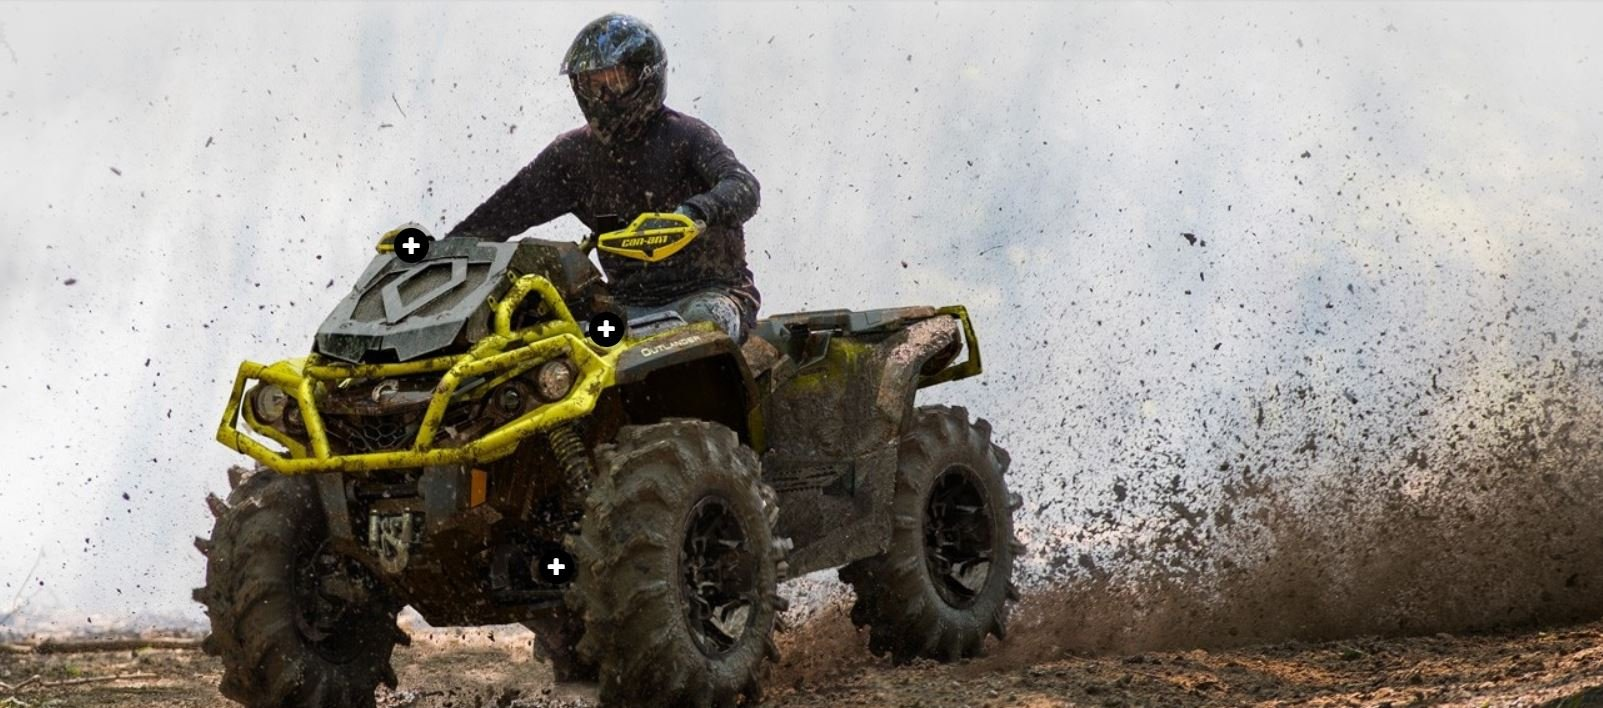 The Re-imagined 2019 Can-Am Outlander